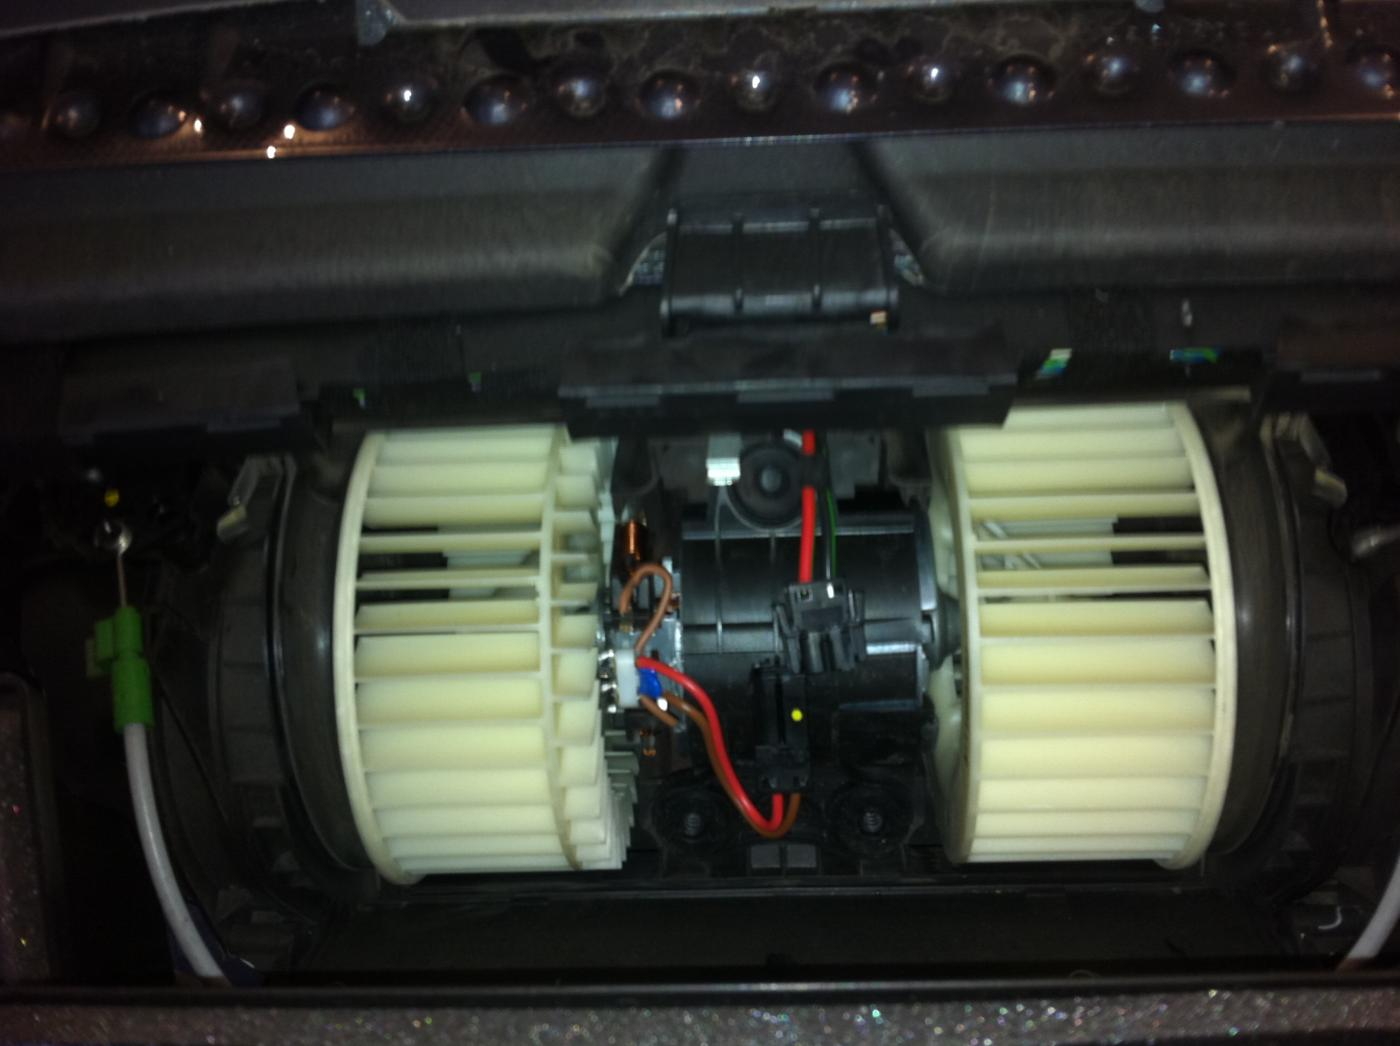 Chevy Impala Blower Fan Wiring Diagram further 2011 2016 Hyundai Elantra Fuses likewise RepairGuideContent further Discussion T17841 ds547485 additionally 725682 898410691. on air conditioner module location